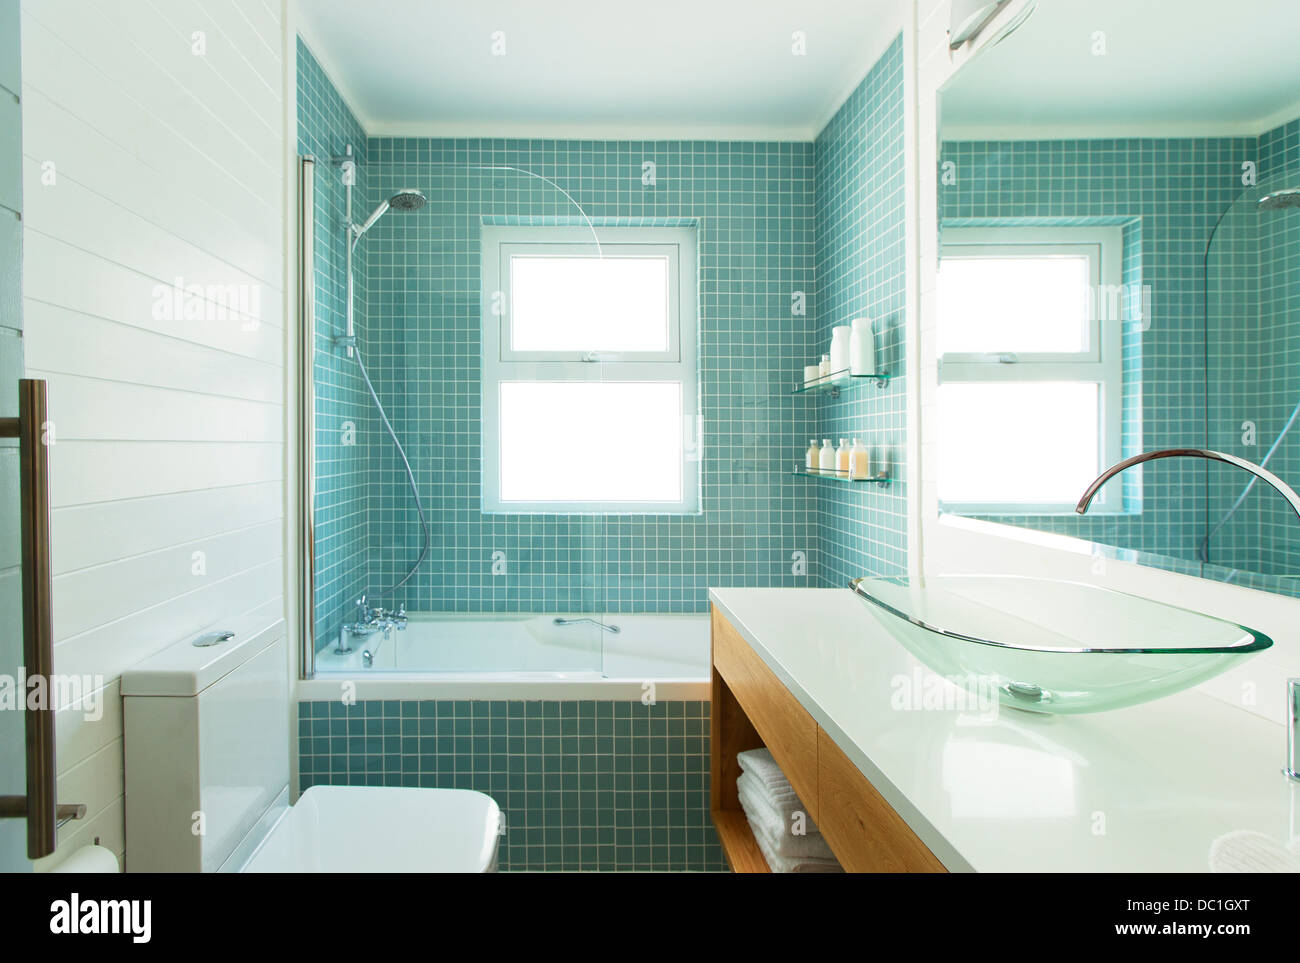 Modern Tile Bathroom Stock Photos & Modern Tile Bathroom Stock ...